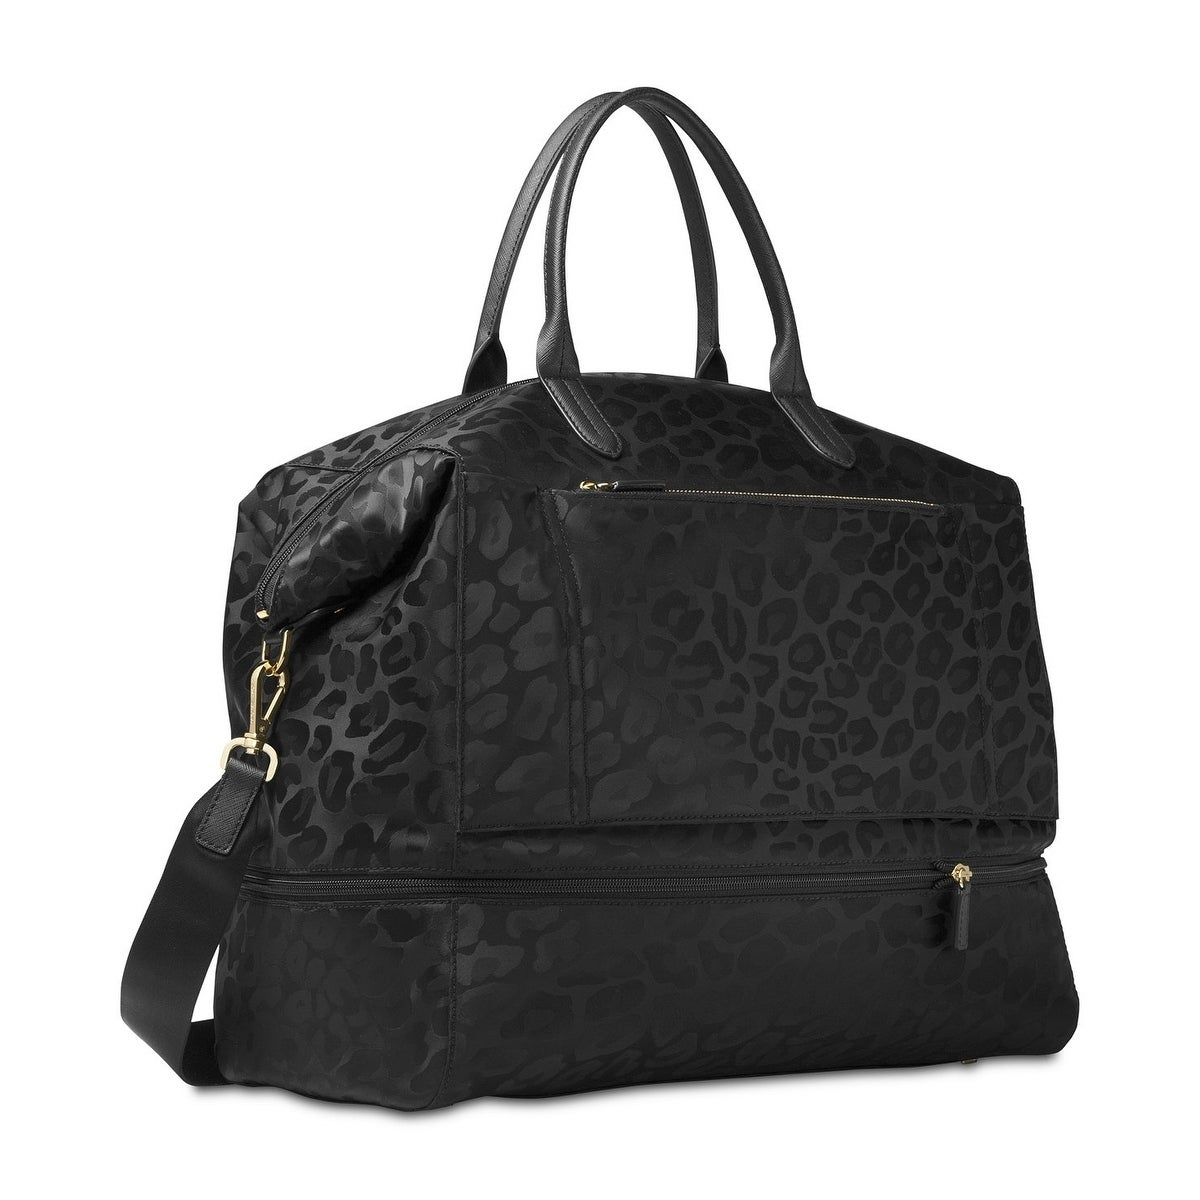 3d22b5c95fbac0 Shop Michael Kors Kelsey Black Nylon Expandable Extra-large Travel ...